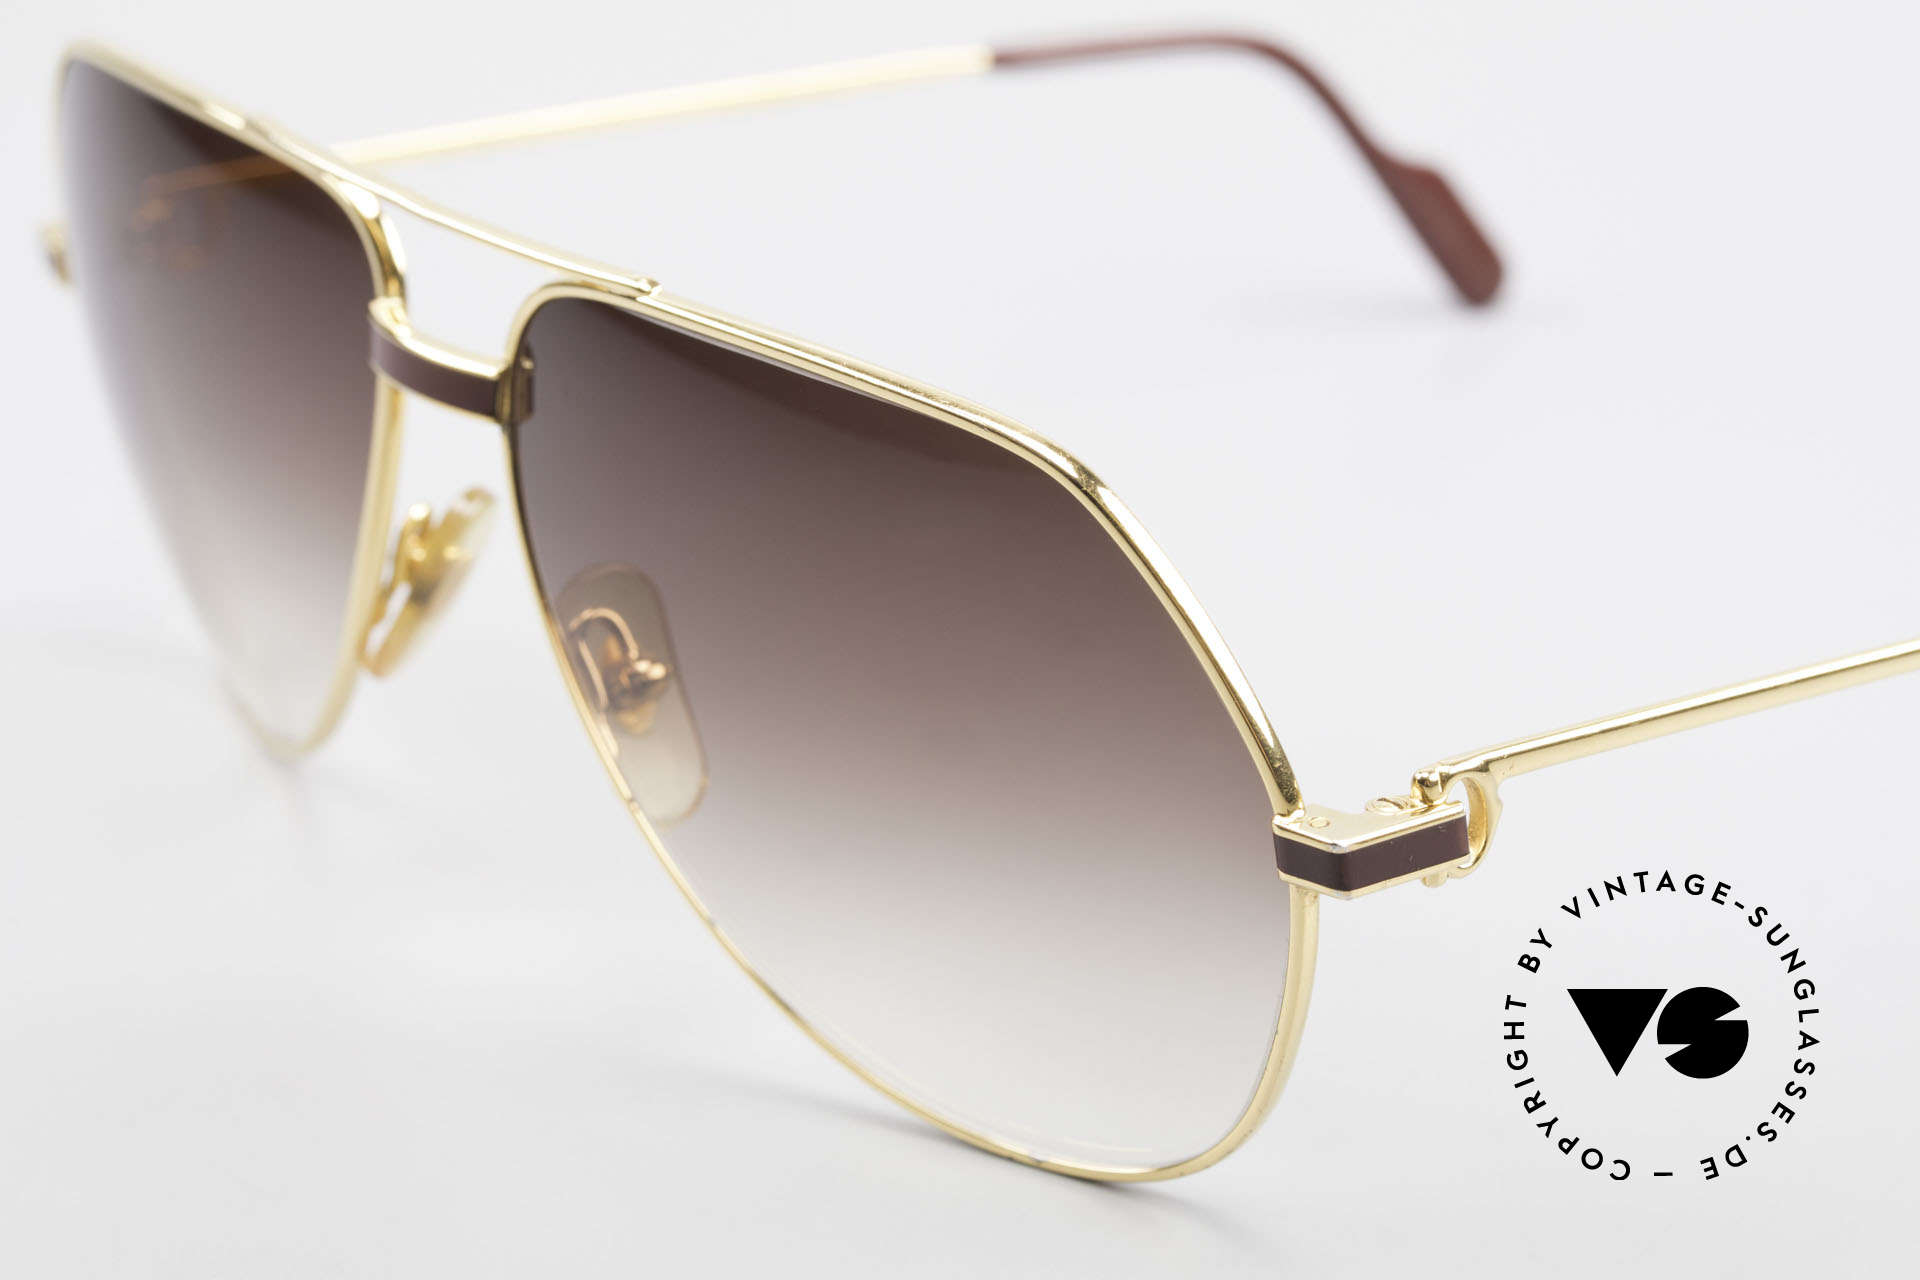 Cartier Vendome Laque - L Luxury Aviator Sunglasses, with classic brown-gradient sun lenses (100% UV prot.), Made for Men